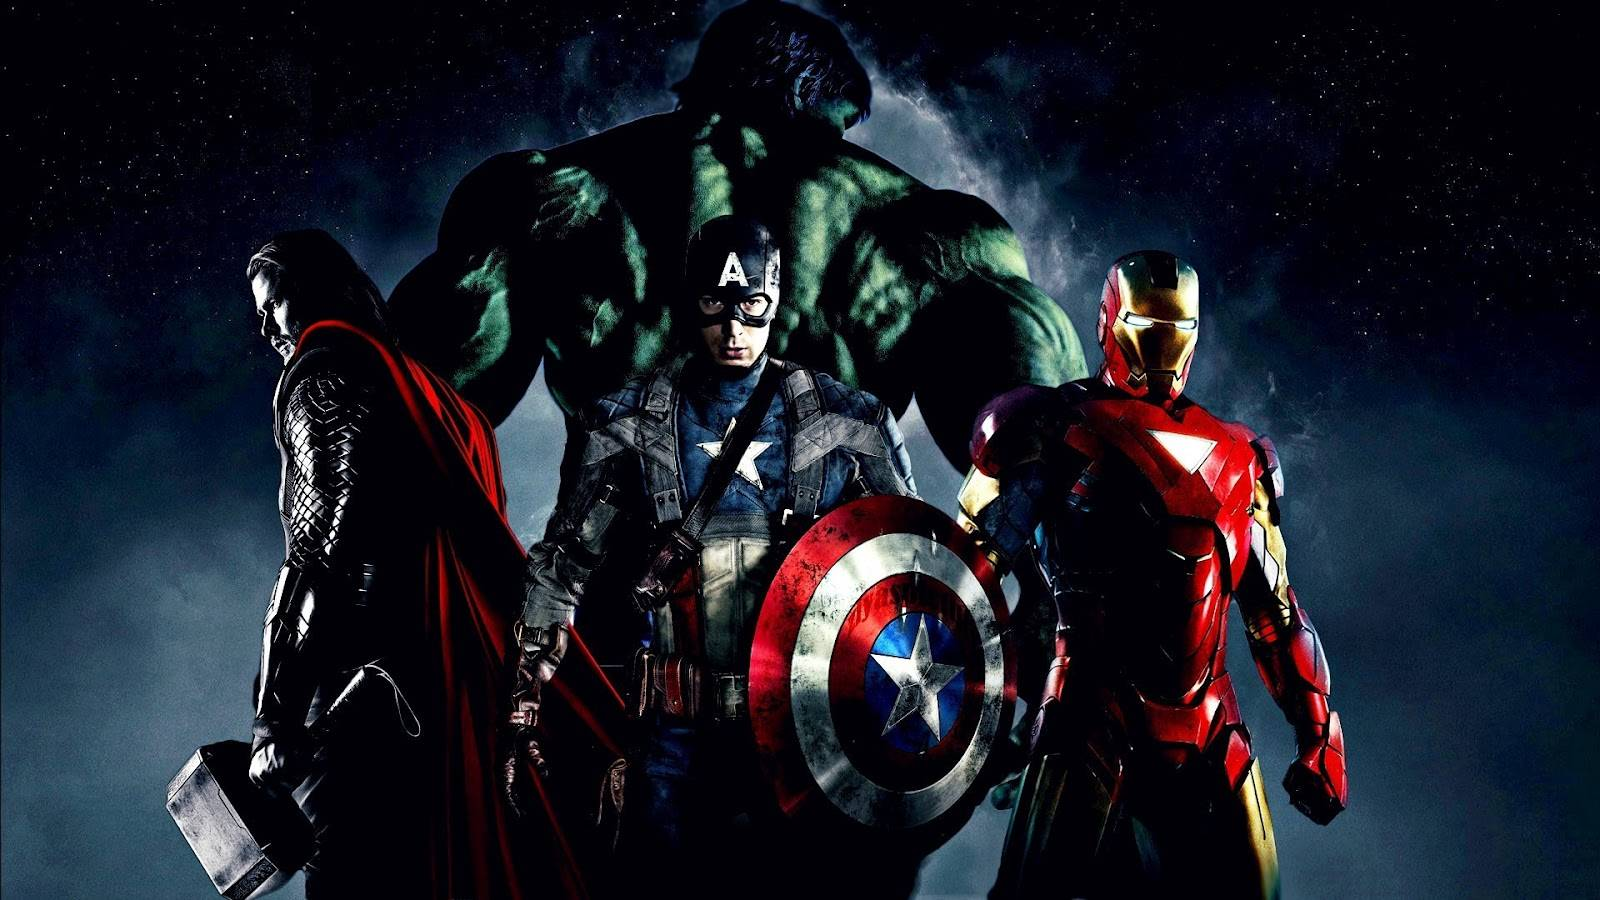 the avengers Your Geeky Wallpapers 1600x900